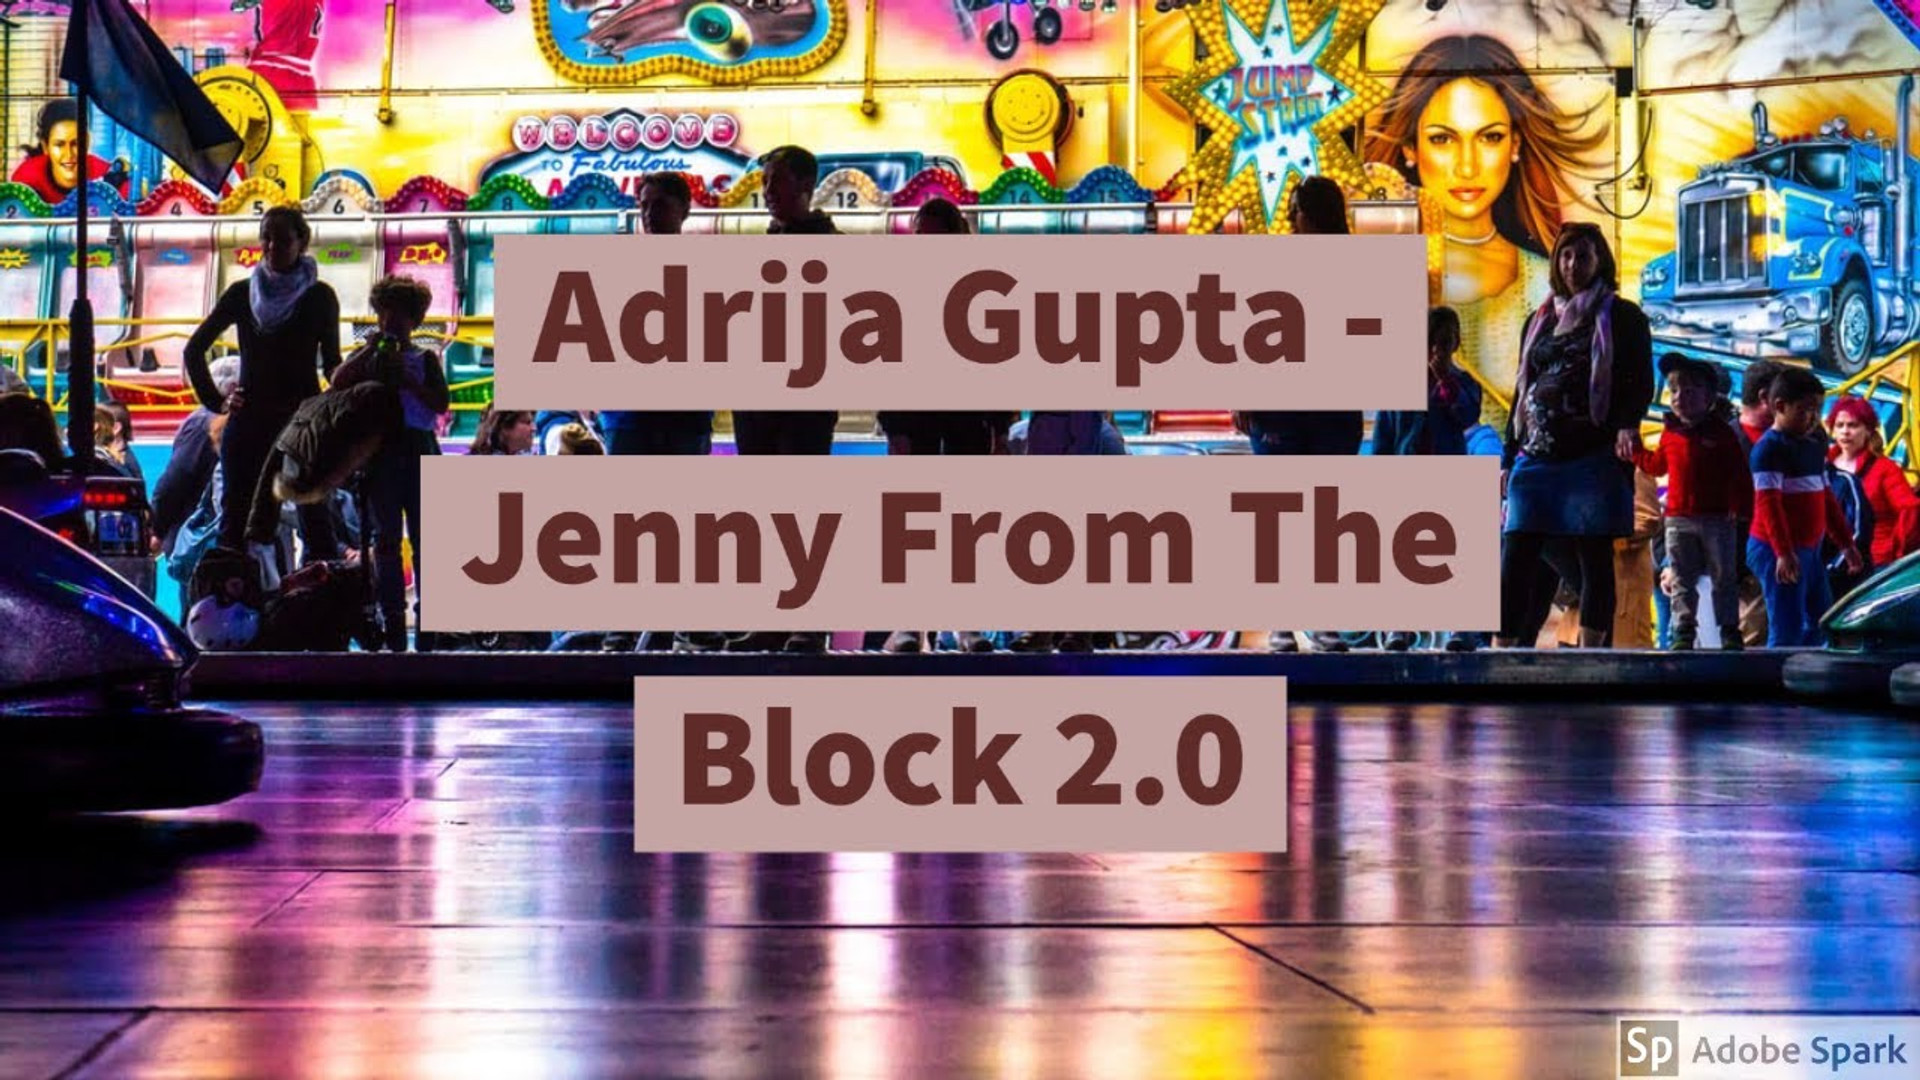 Adrija Gupta - Jenny From The Block 2.0 (cover)